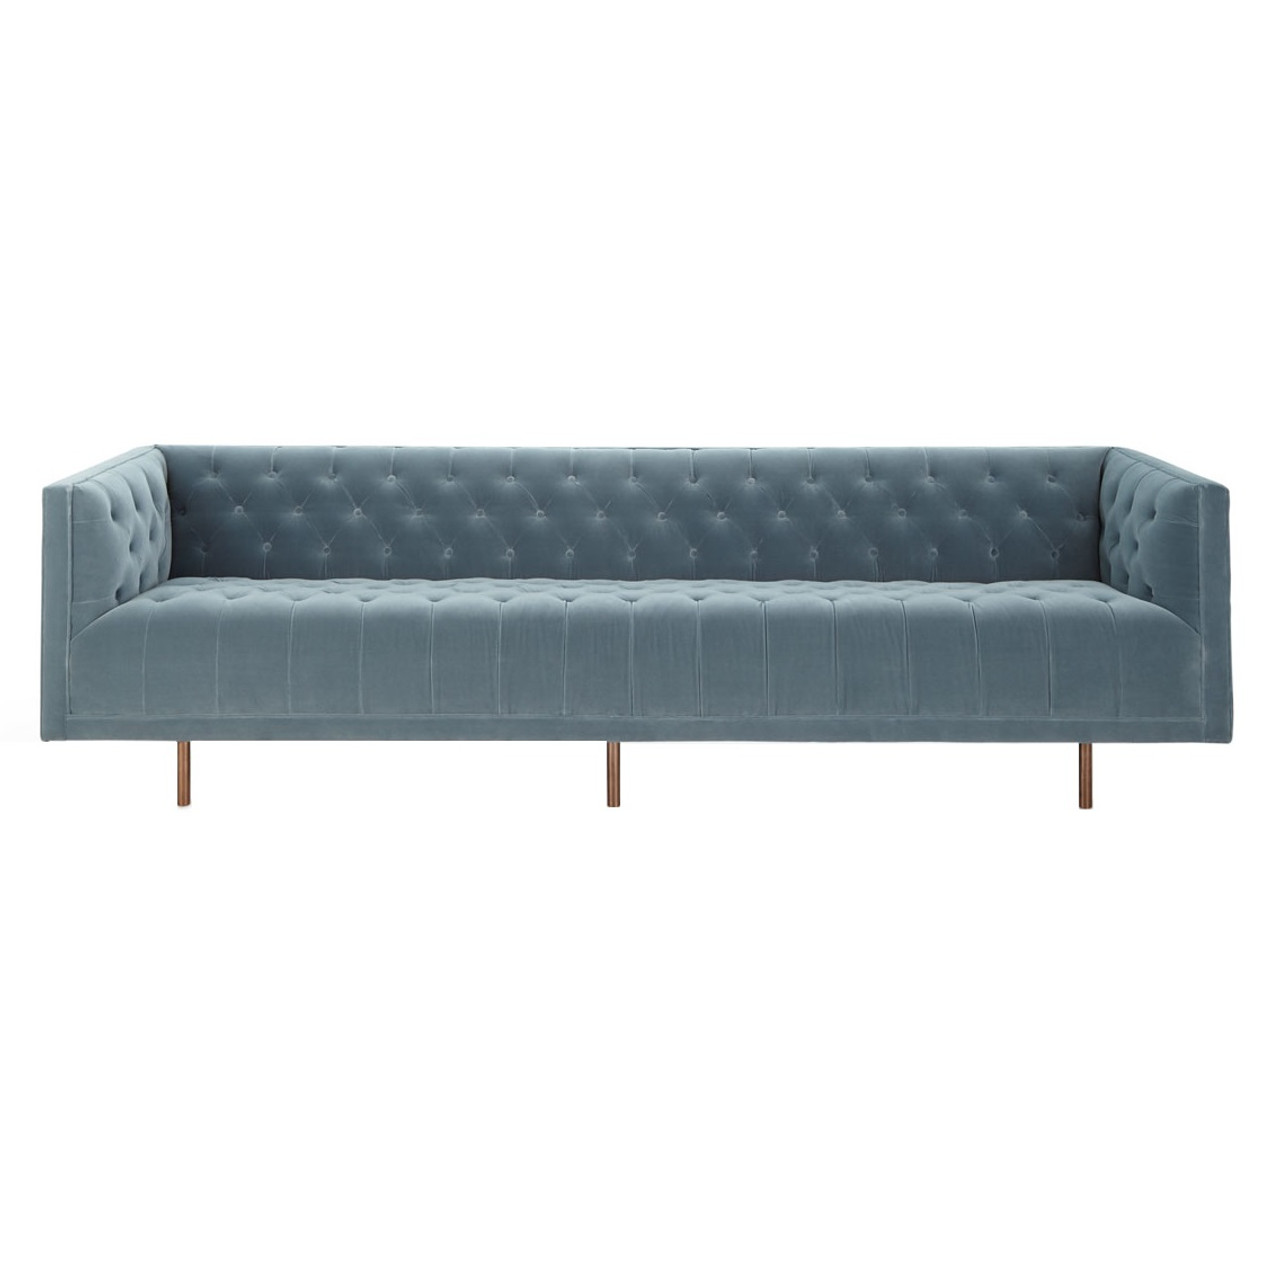 italian shelter arm sofa sofas that turn into bunk beds lynette blue velvet tufted 108 quot zin home